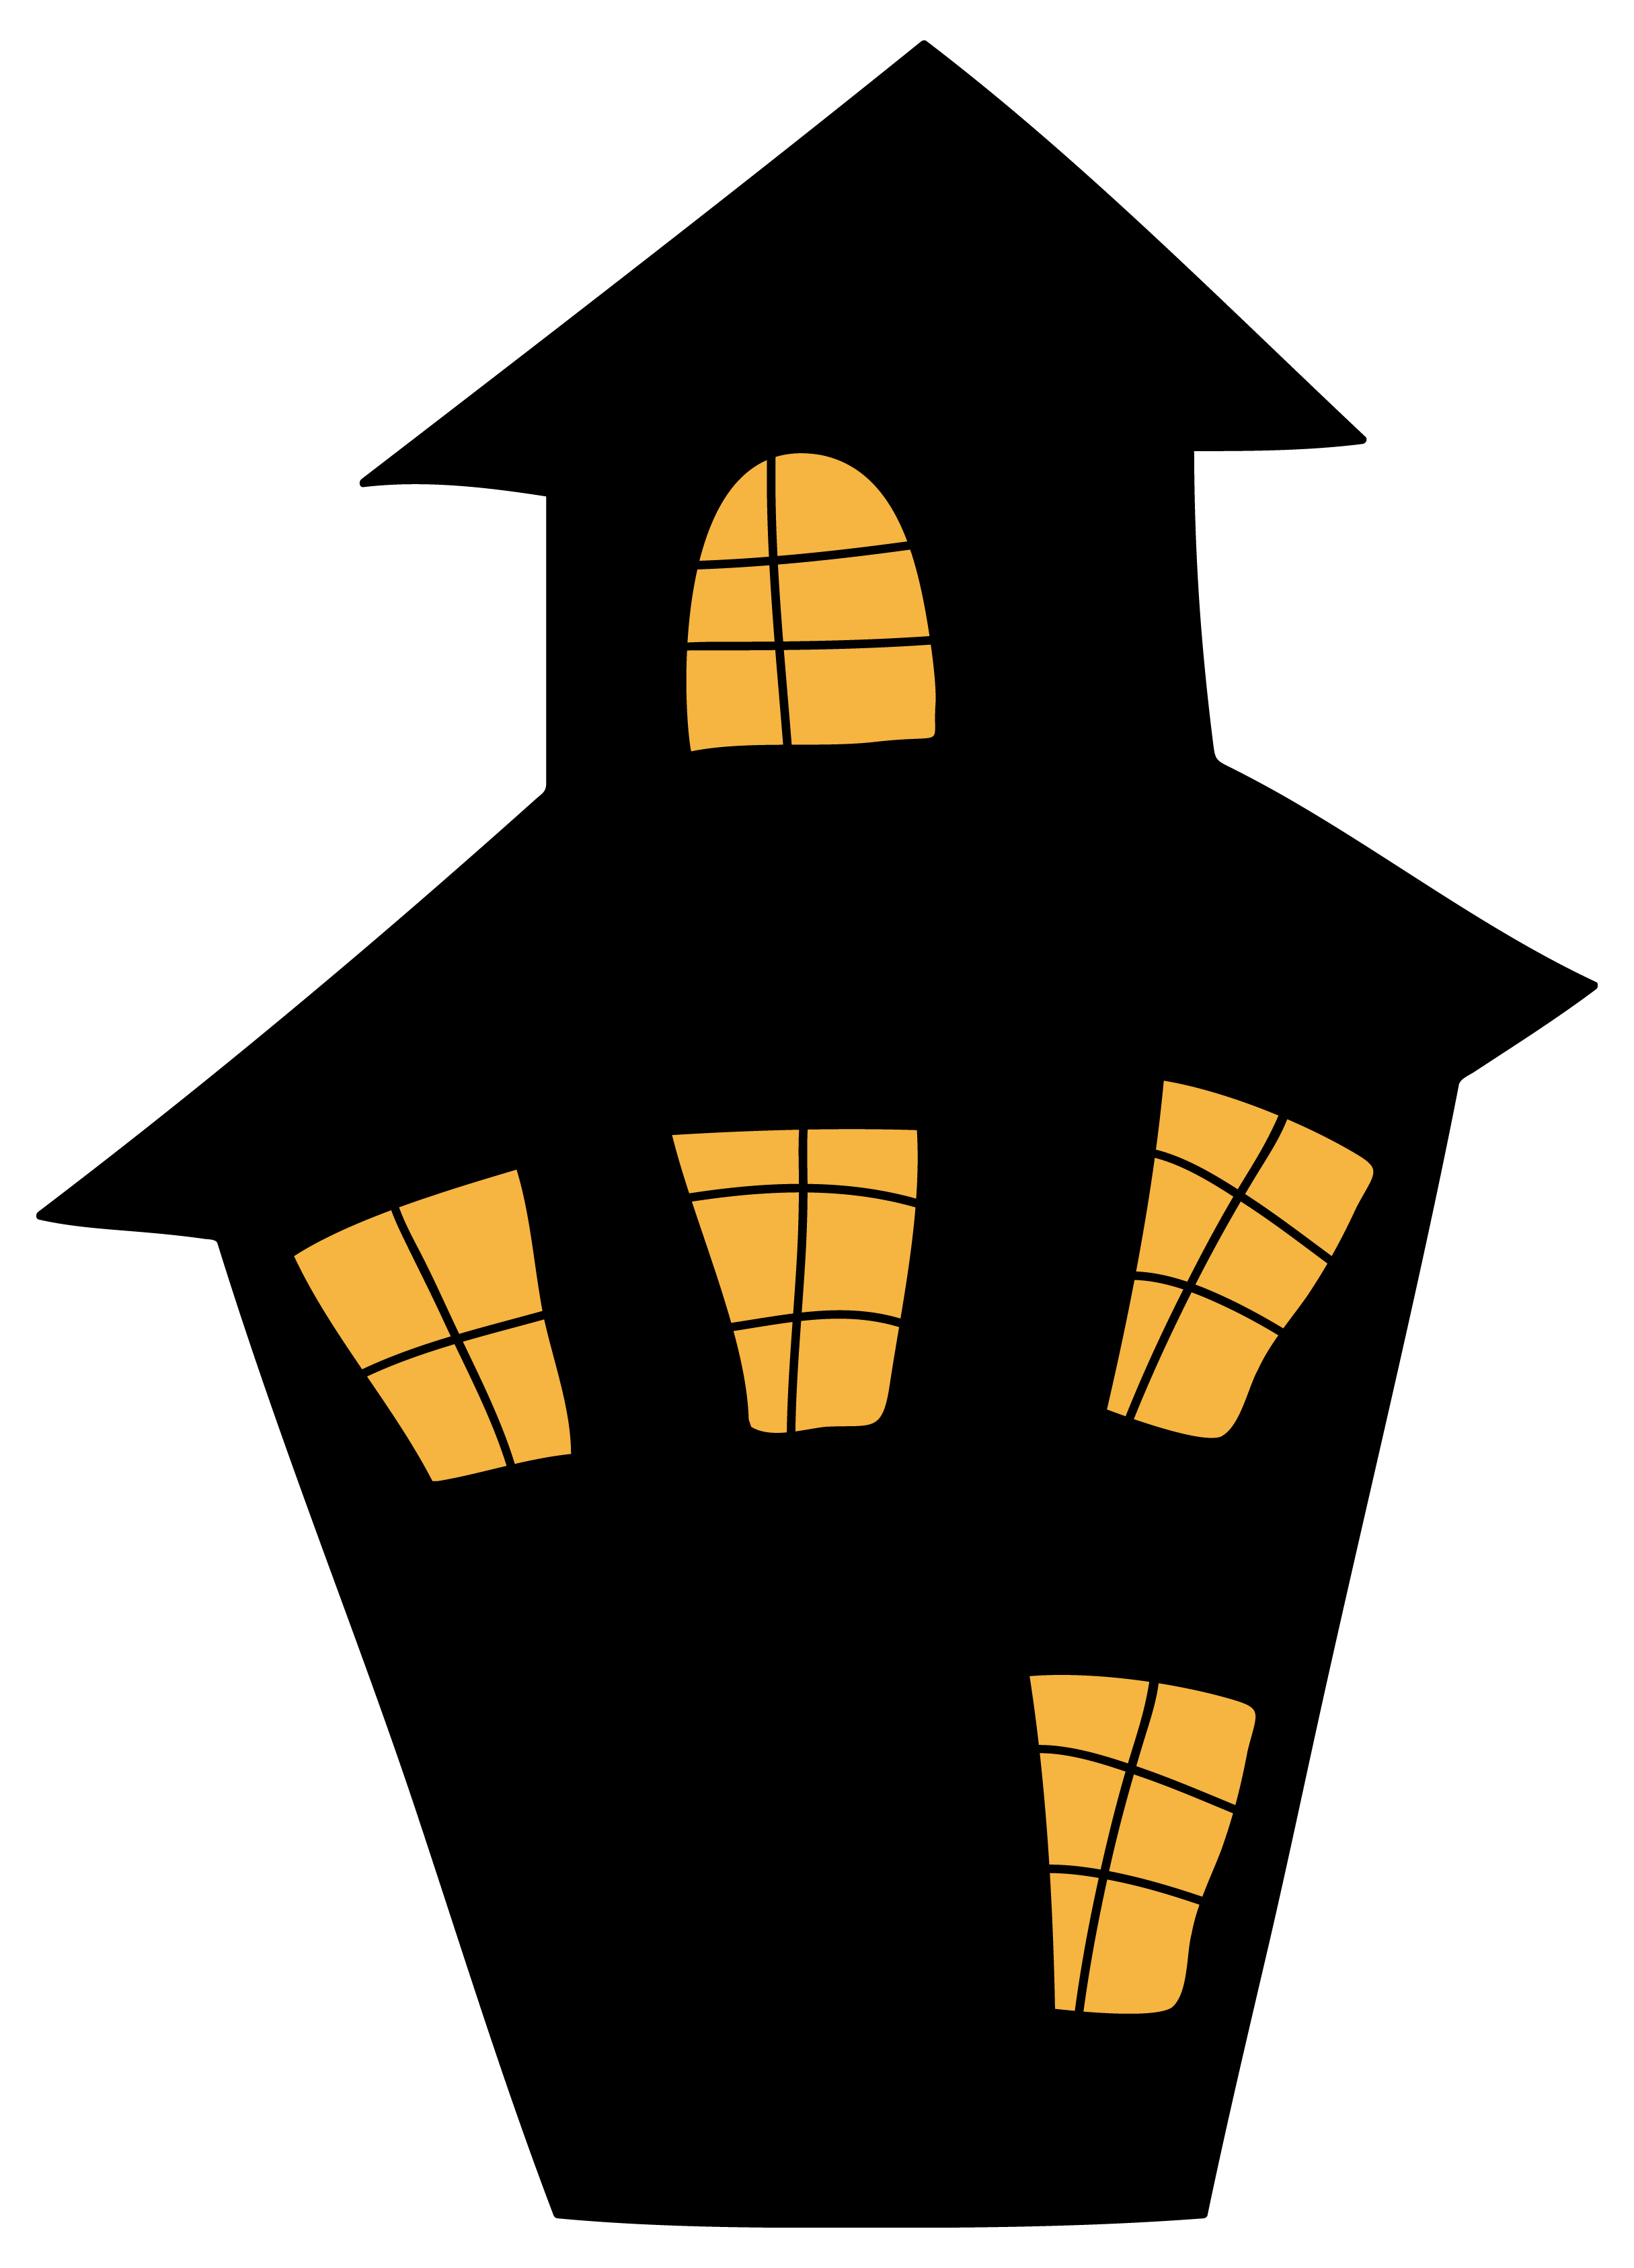 Halloween school clipart svg freeuse download House Clipart Png. House Clipart Png - Deltasport.co svg freeuse download